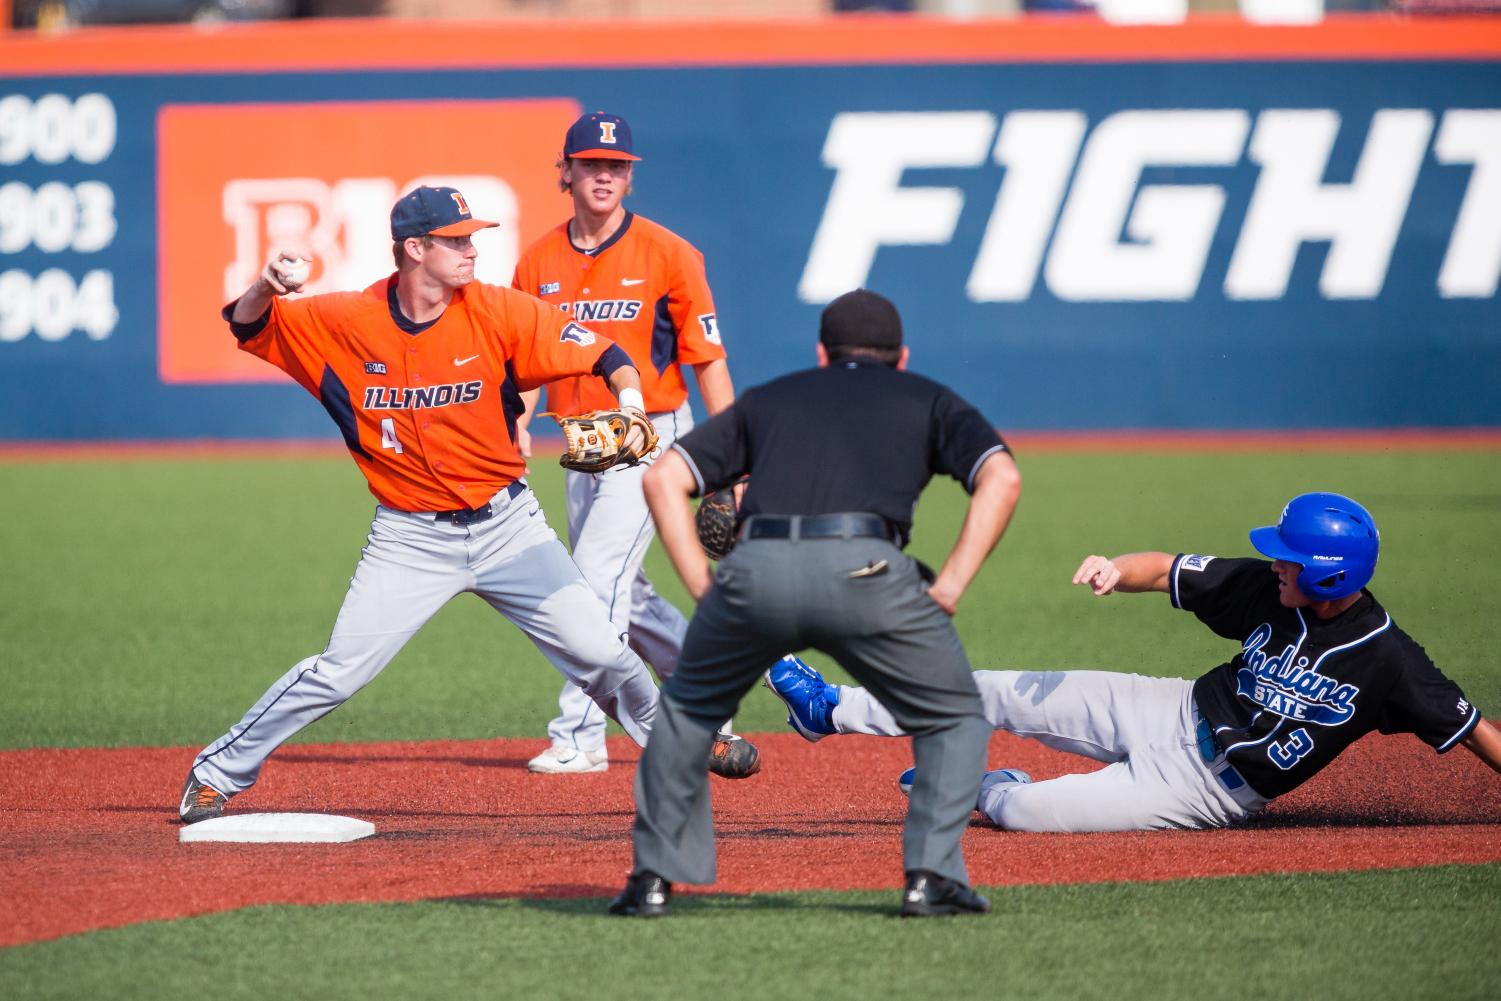 Illinois infielder Ben Troike hits the ball during the game against Indiana State at Illinois Field on Sept. 24.